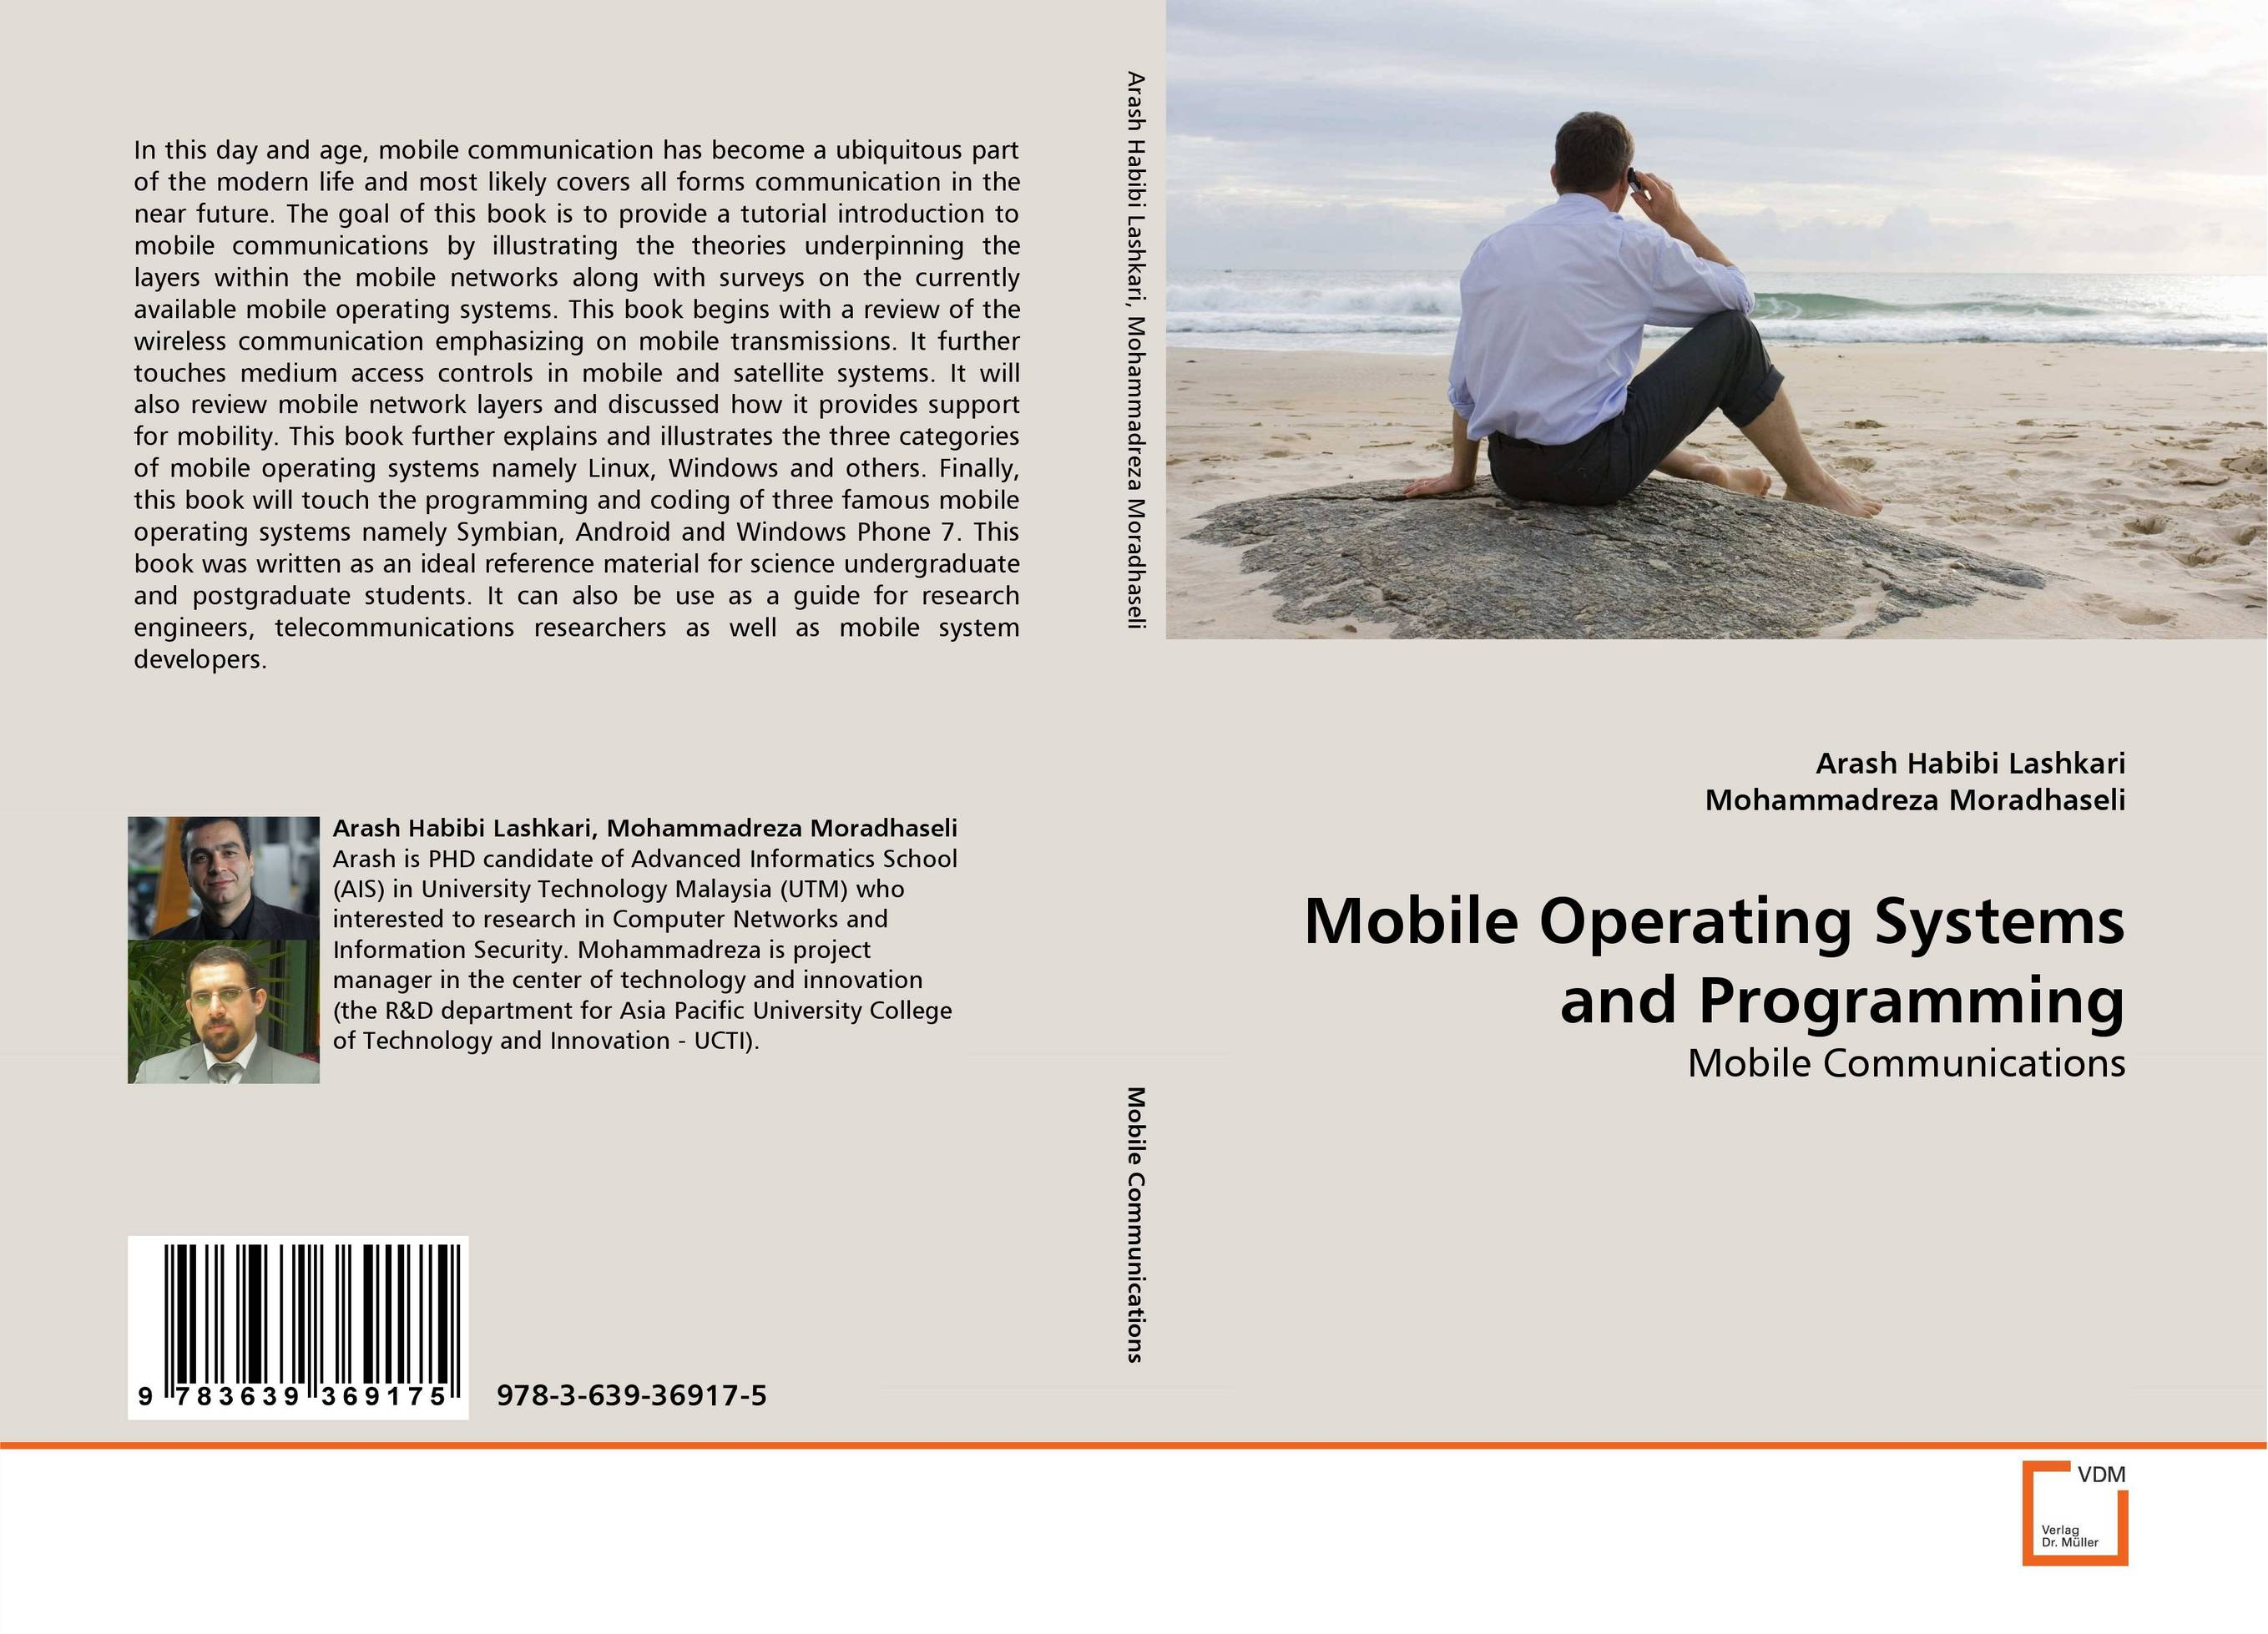 Mobile Operating Systems and Programming quality systems and controls for pharmaceuticals